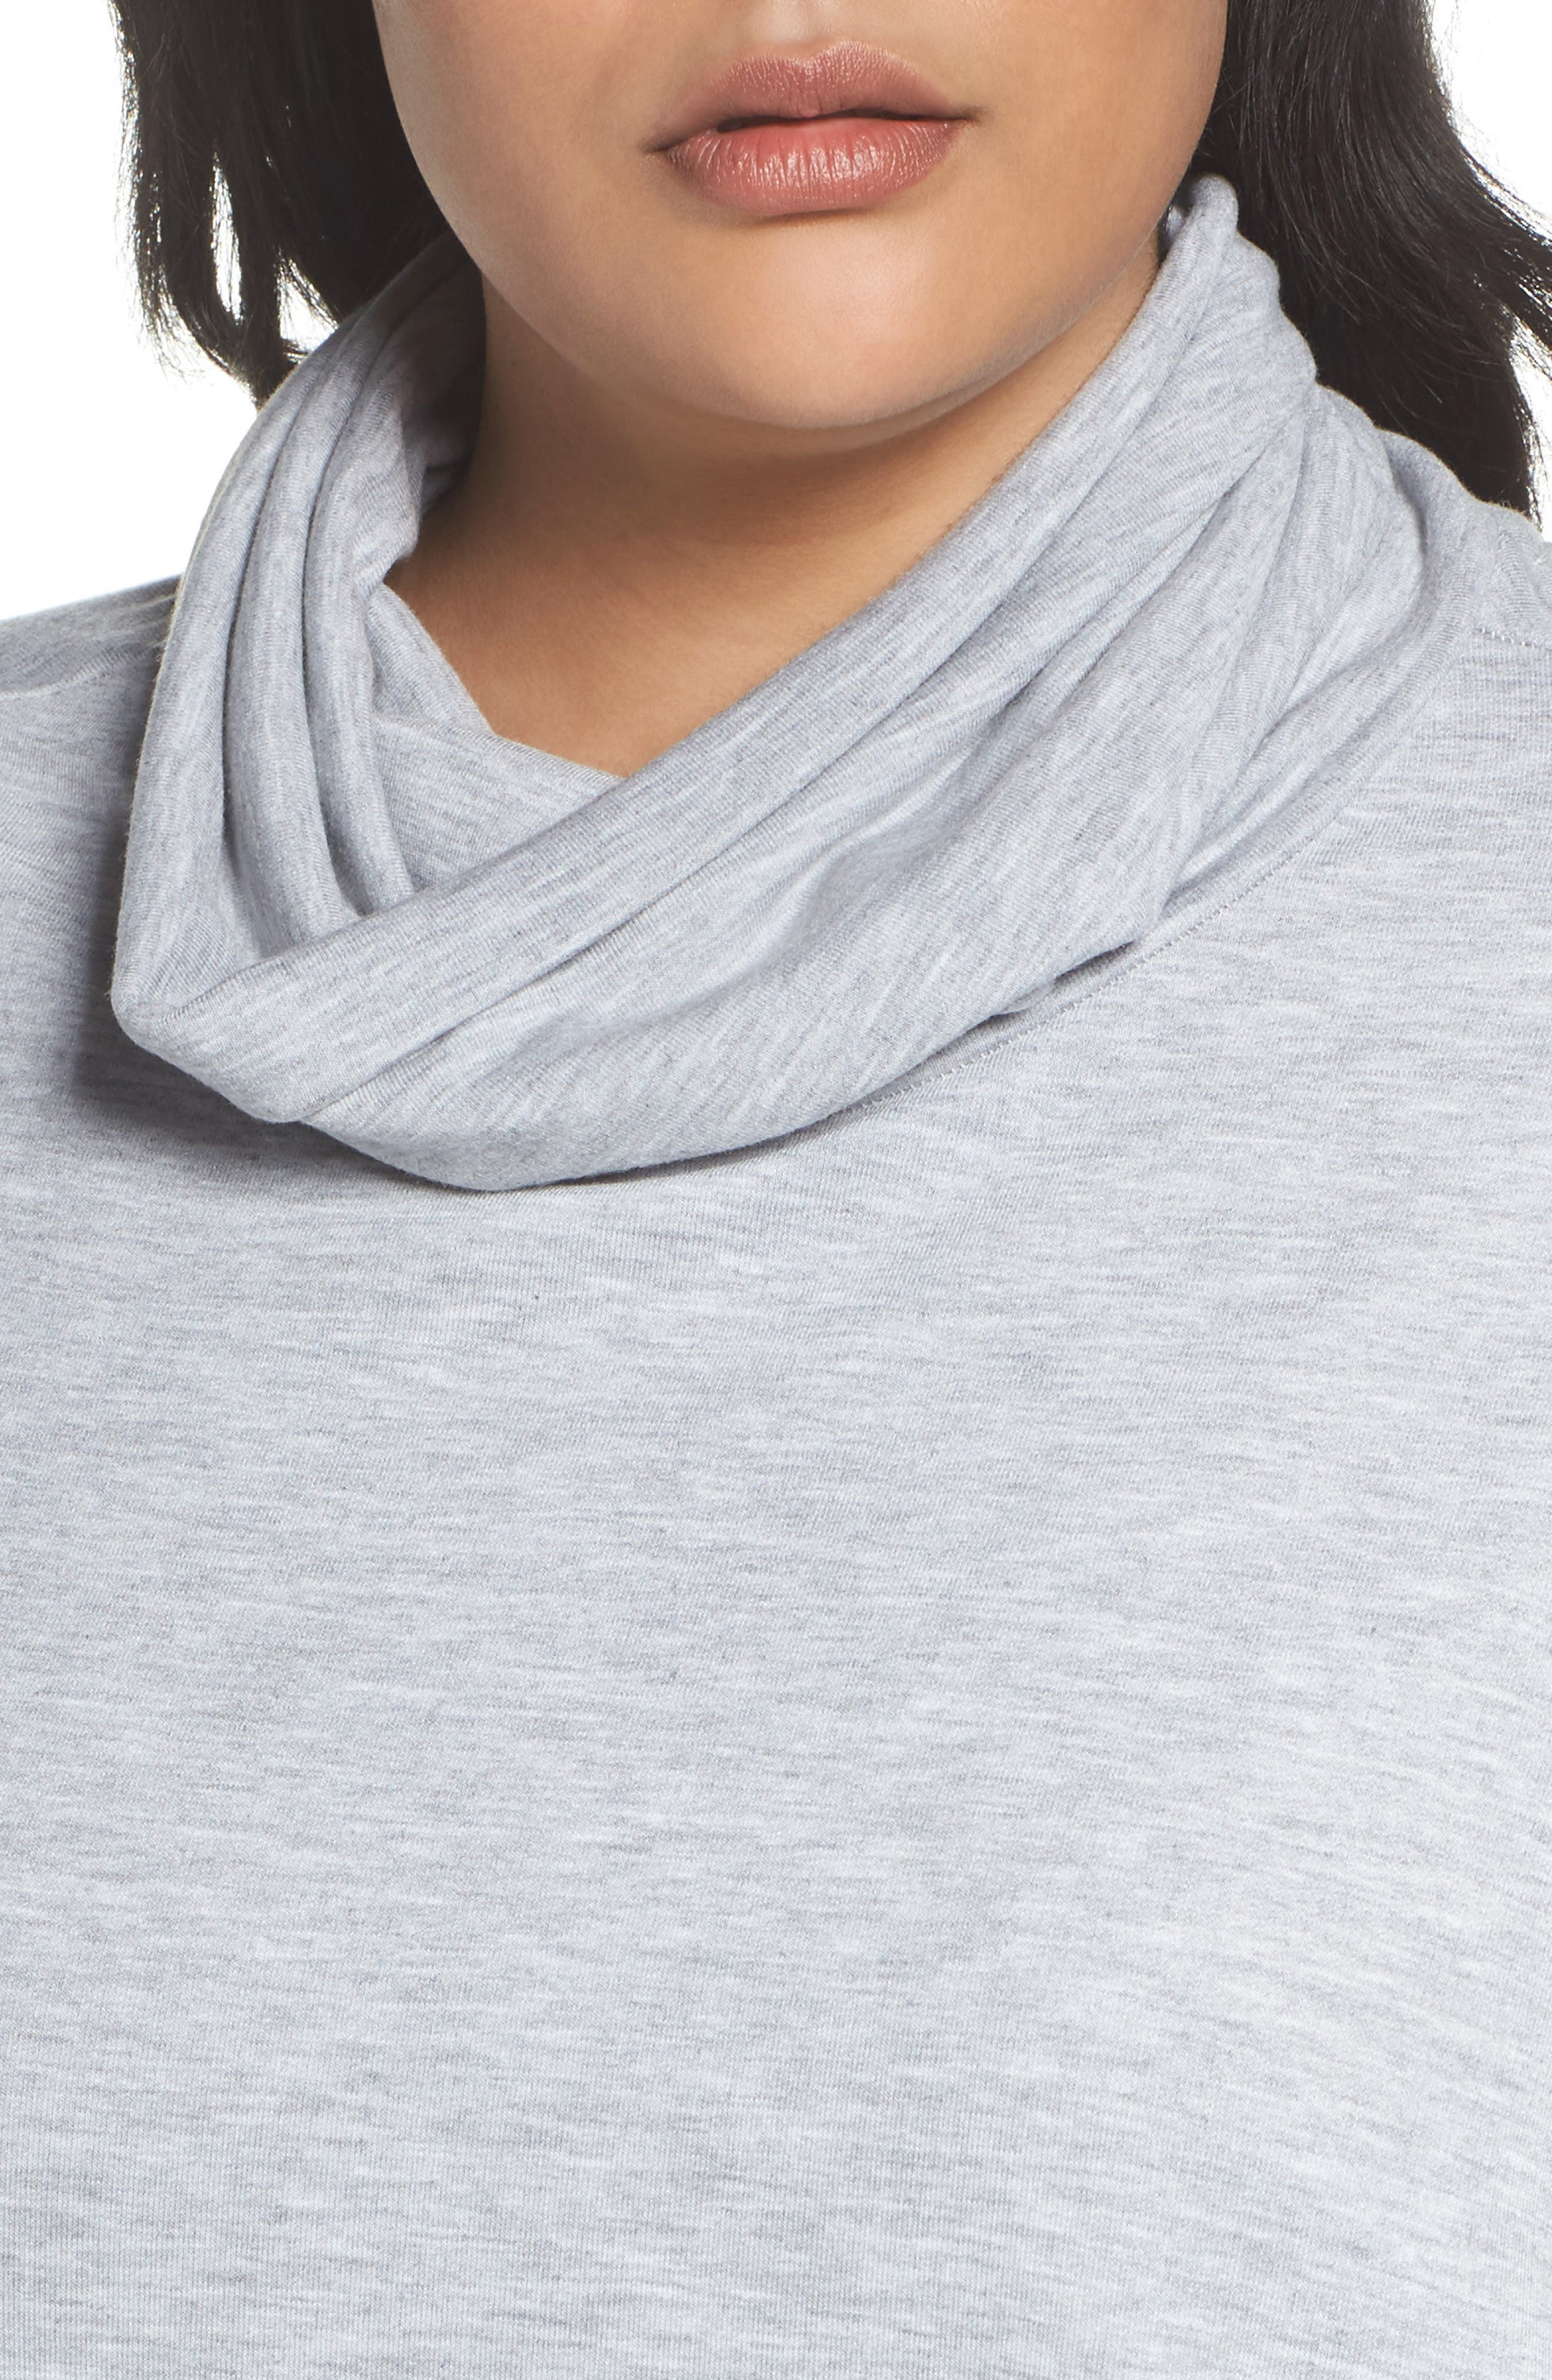 Cowl Neck Tunic,                             Alternate thumbnail 4, color,                             Grey Heather